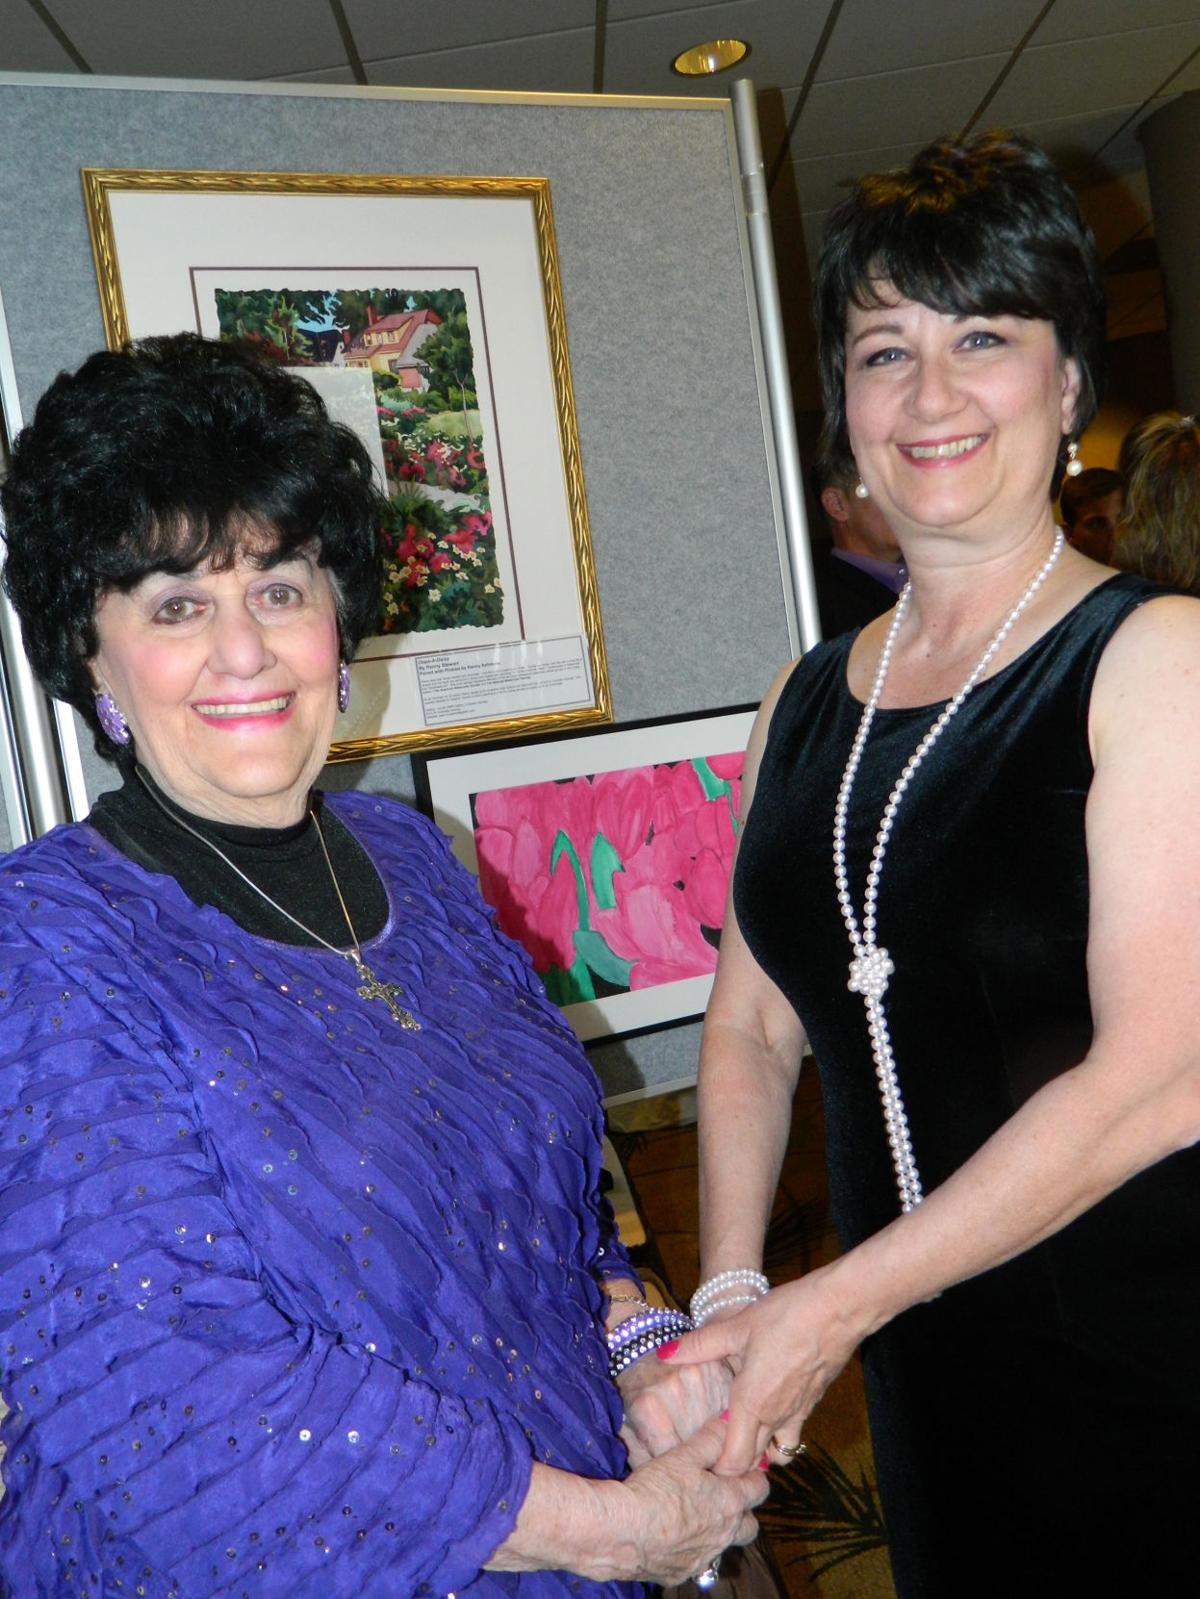 AROUND TOWN: Art as memories at the Alzheimer's Association